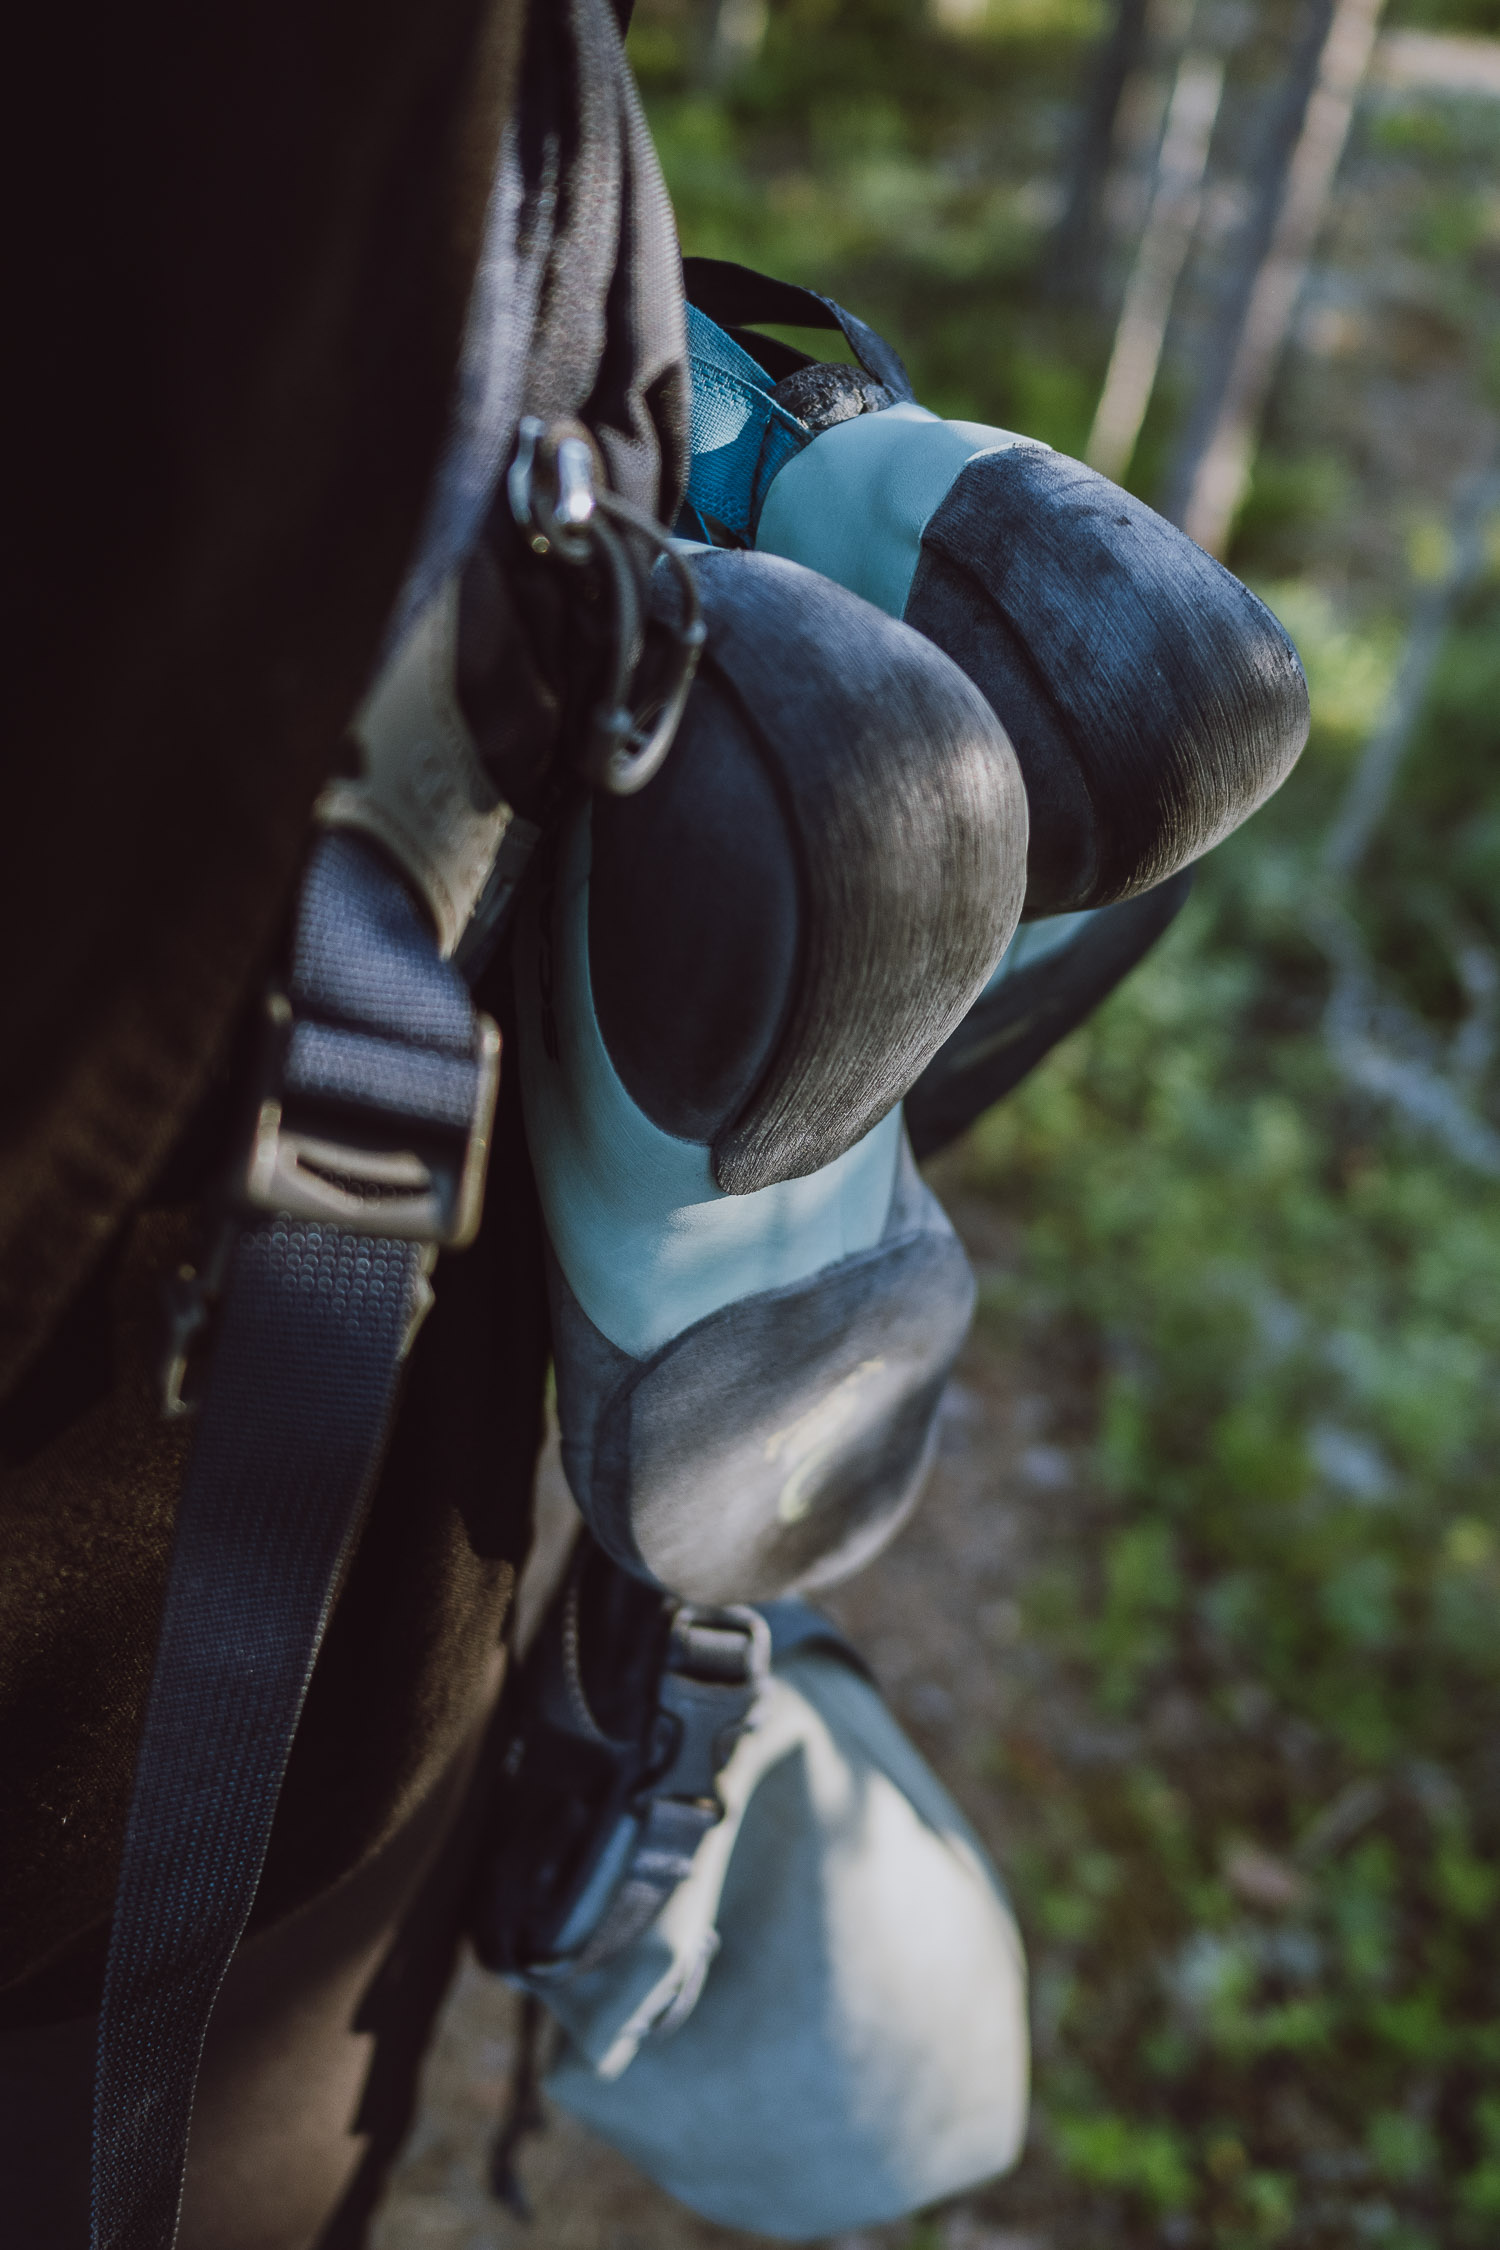 climbing shoes and chalk bag